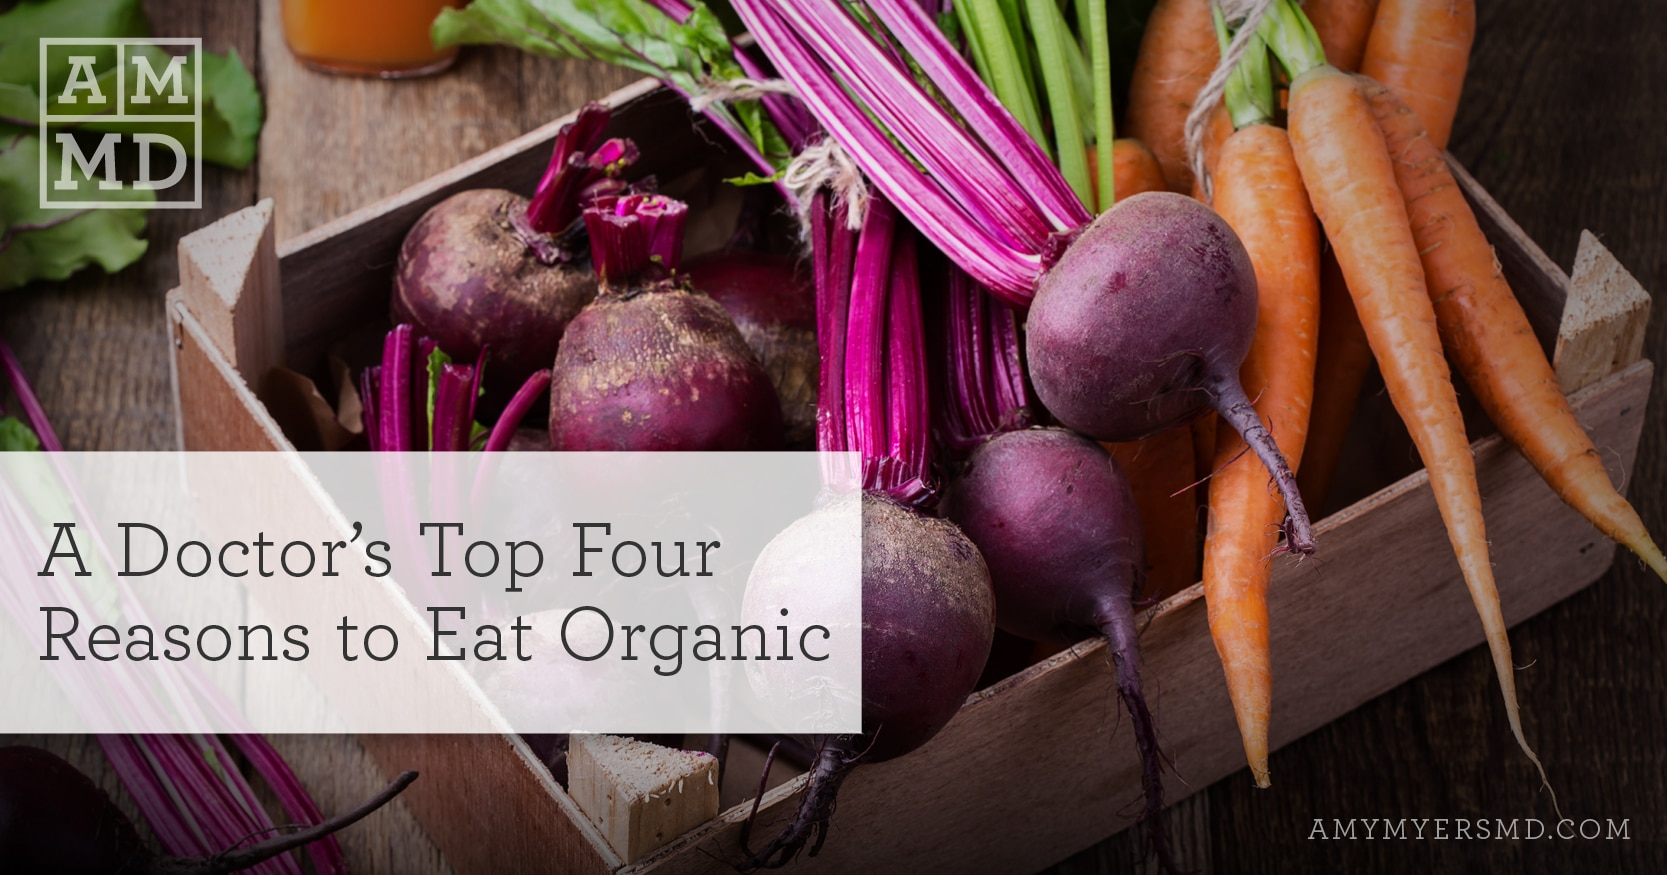 Top Four Reasons to Eat Organic - Amy Myers MD